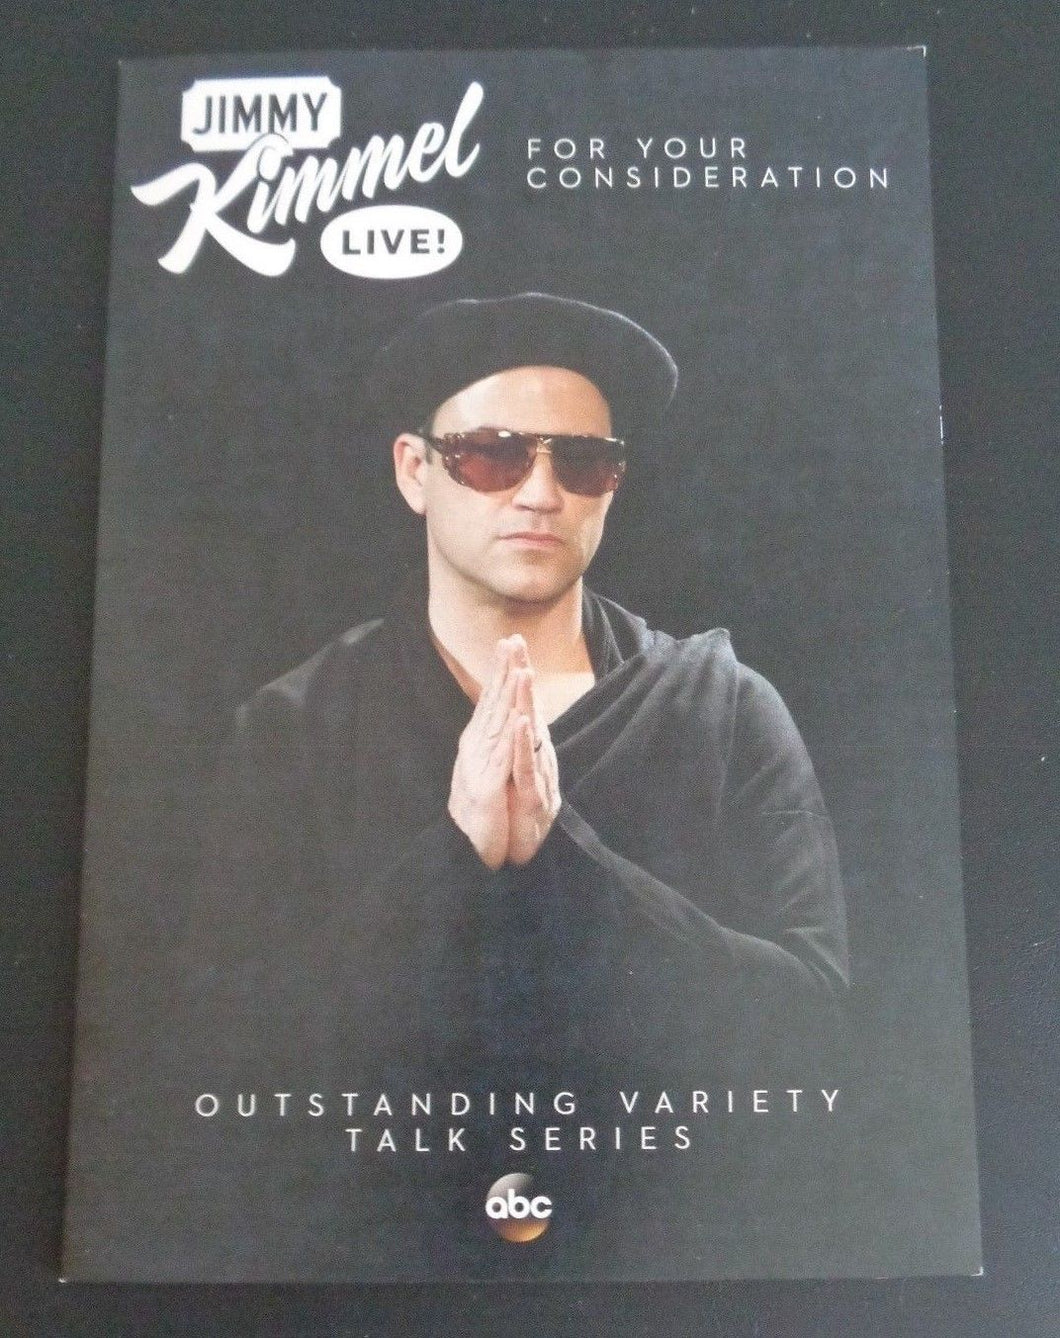 FYC 2015 Jimmy Kimmel Live DVD For Your Consideration